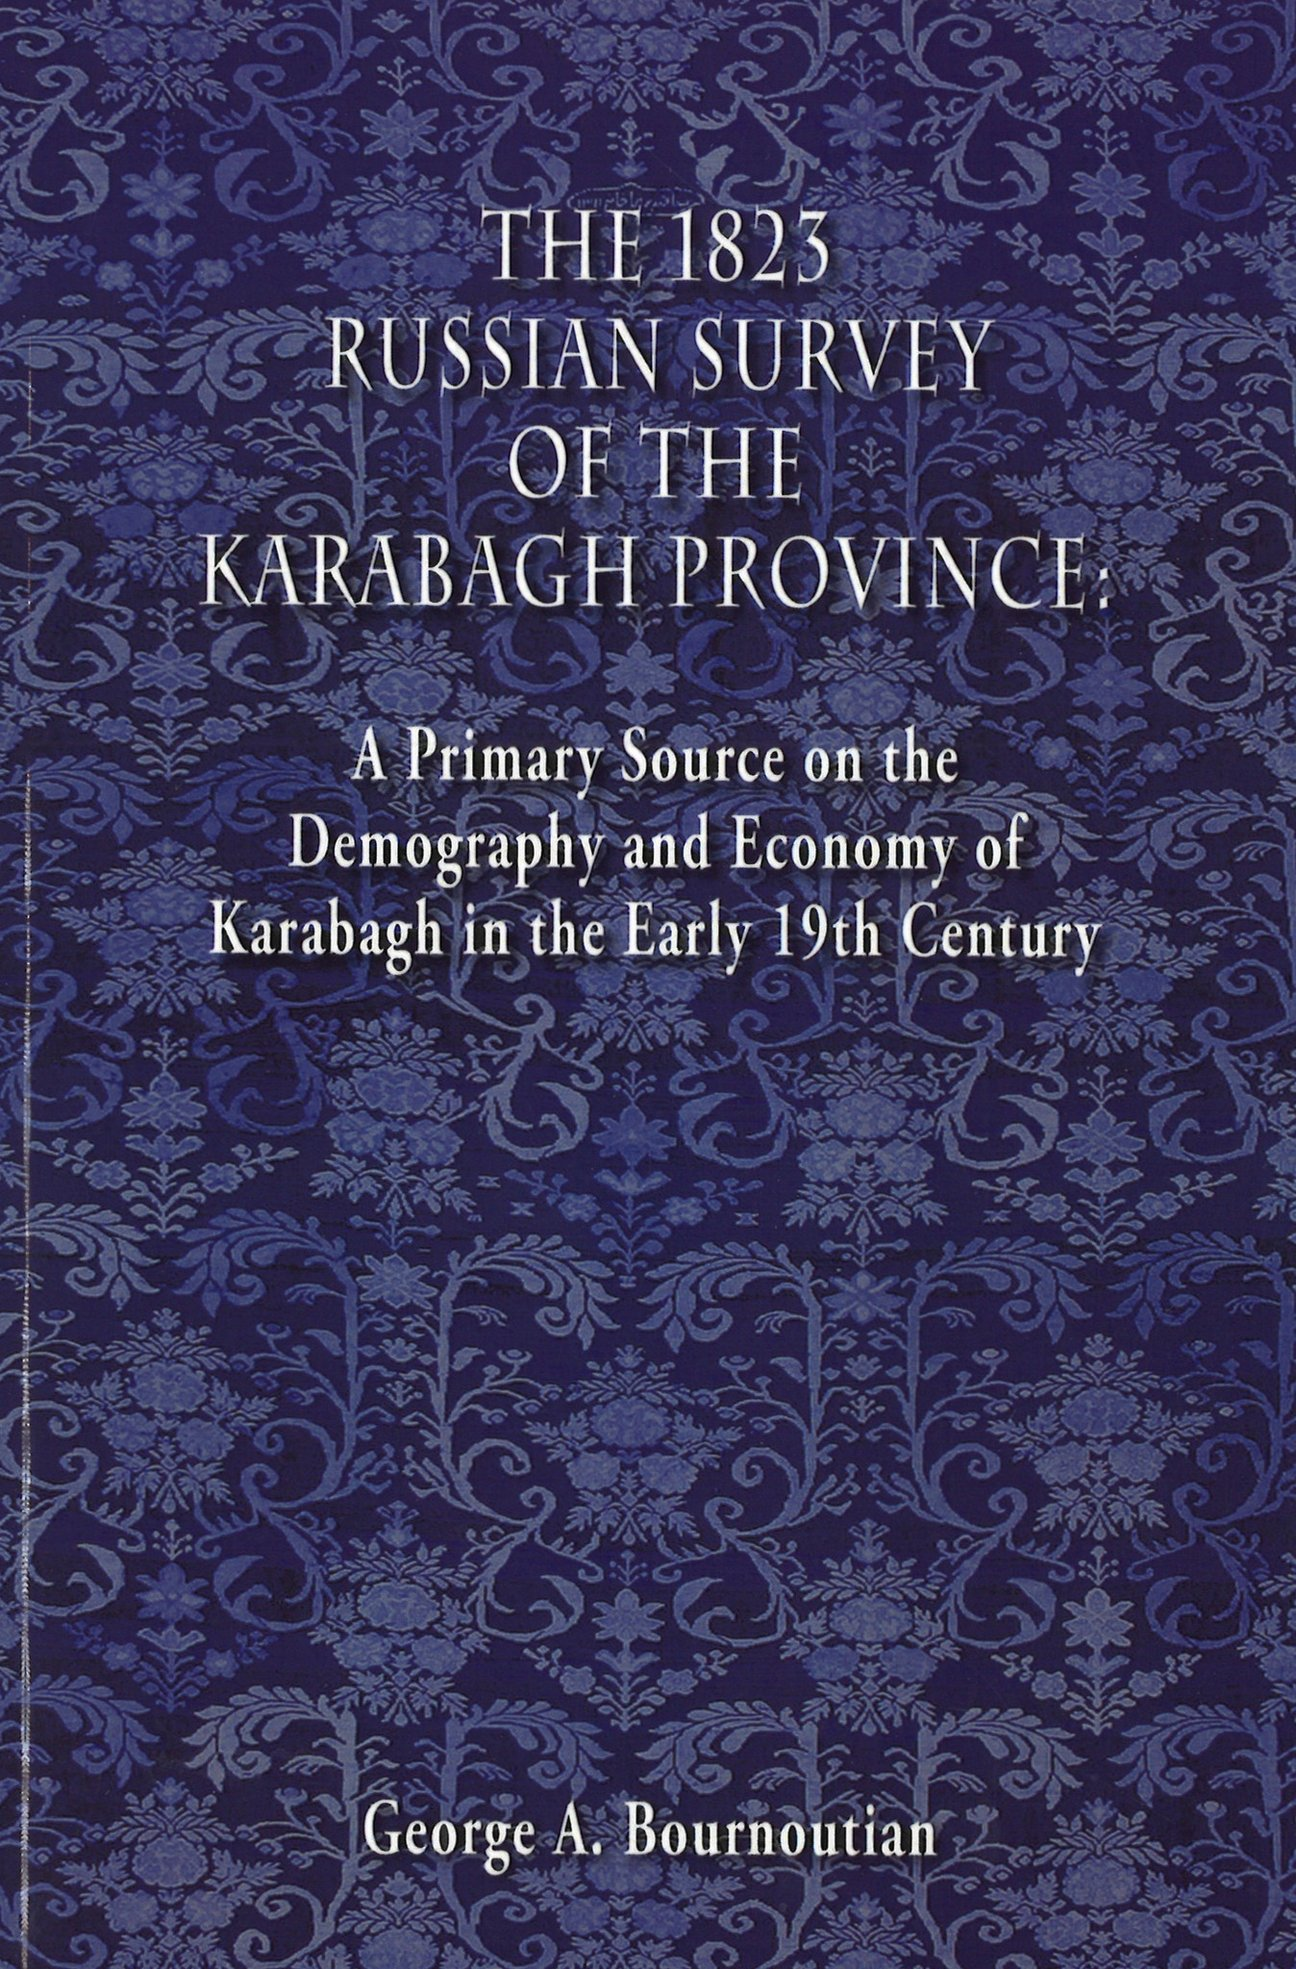 THE 1823 RUSSIAN SURVEY OF THE KARABAGH PROVINCE